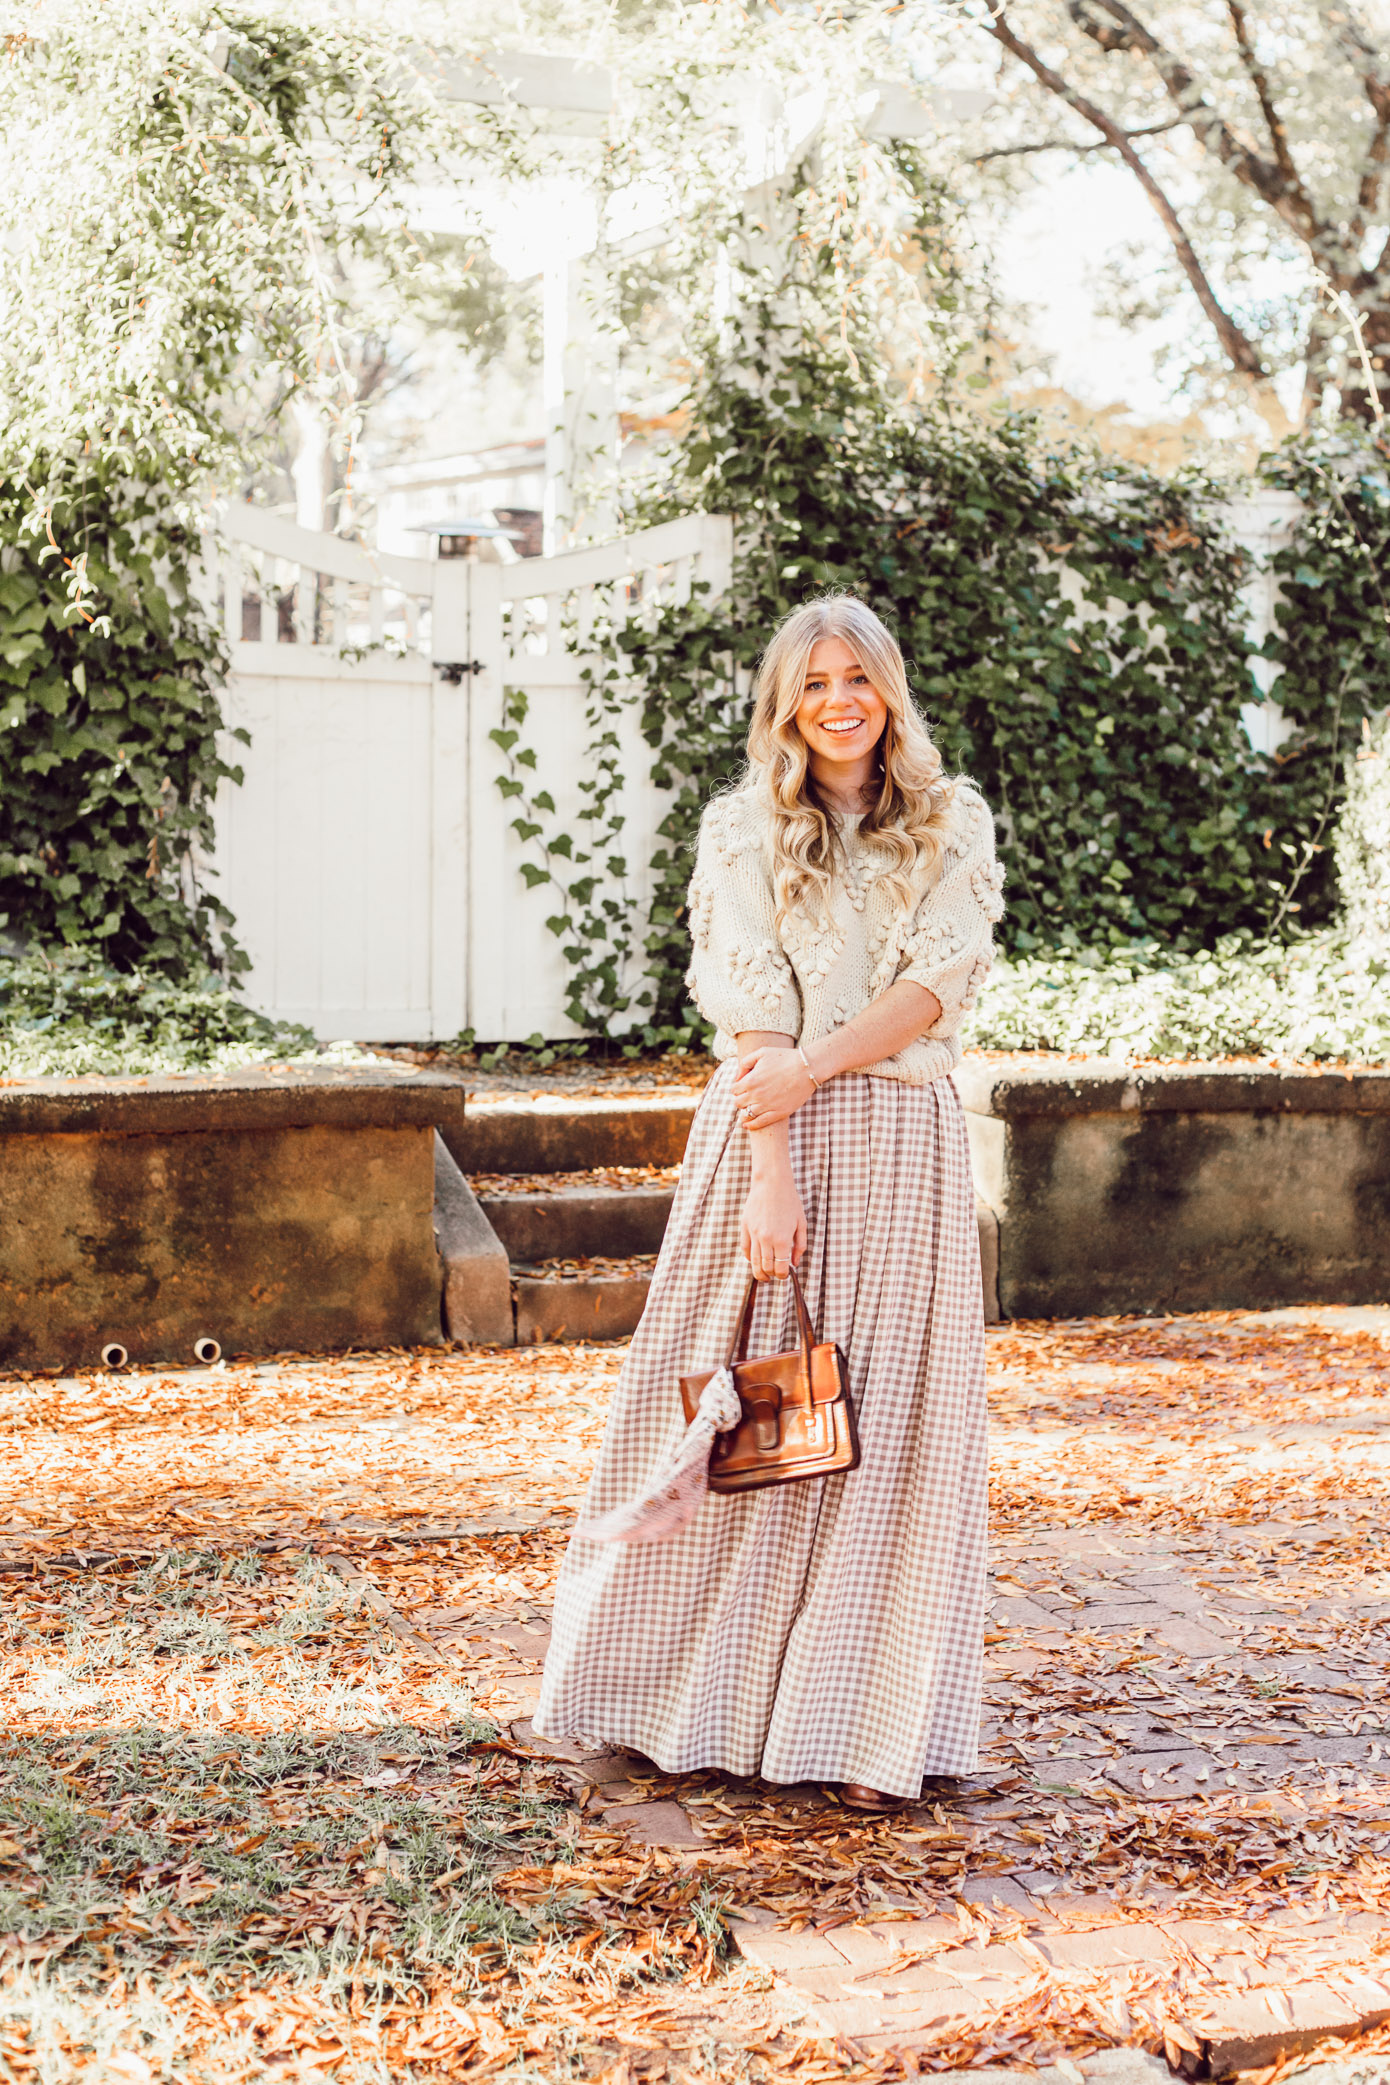 Spice Up Your Winter Date Night Look with a Winter Maxi Skirt featured on Louella Reese Life & Style Blog | Gingham Maxi Skirt, Pommed Heart Sweater